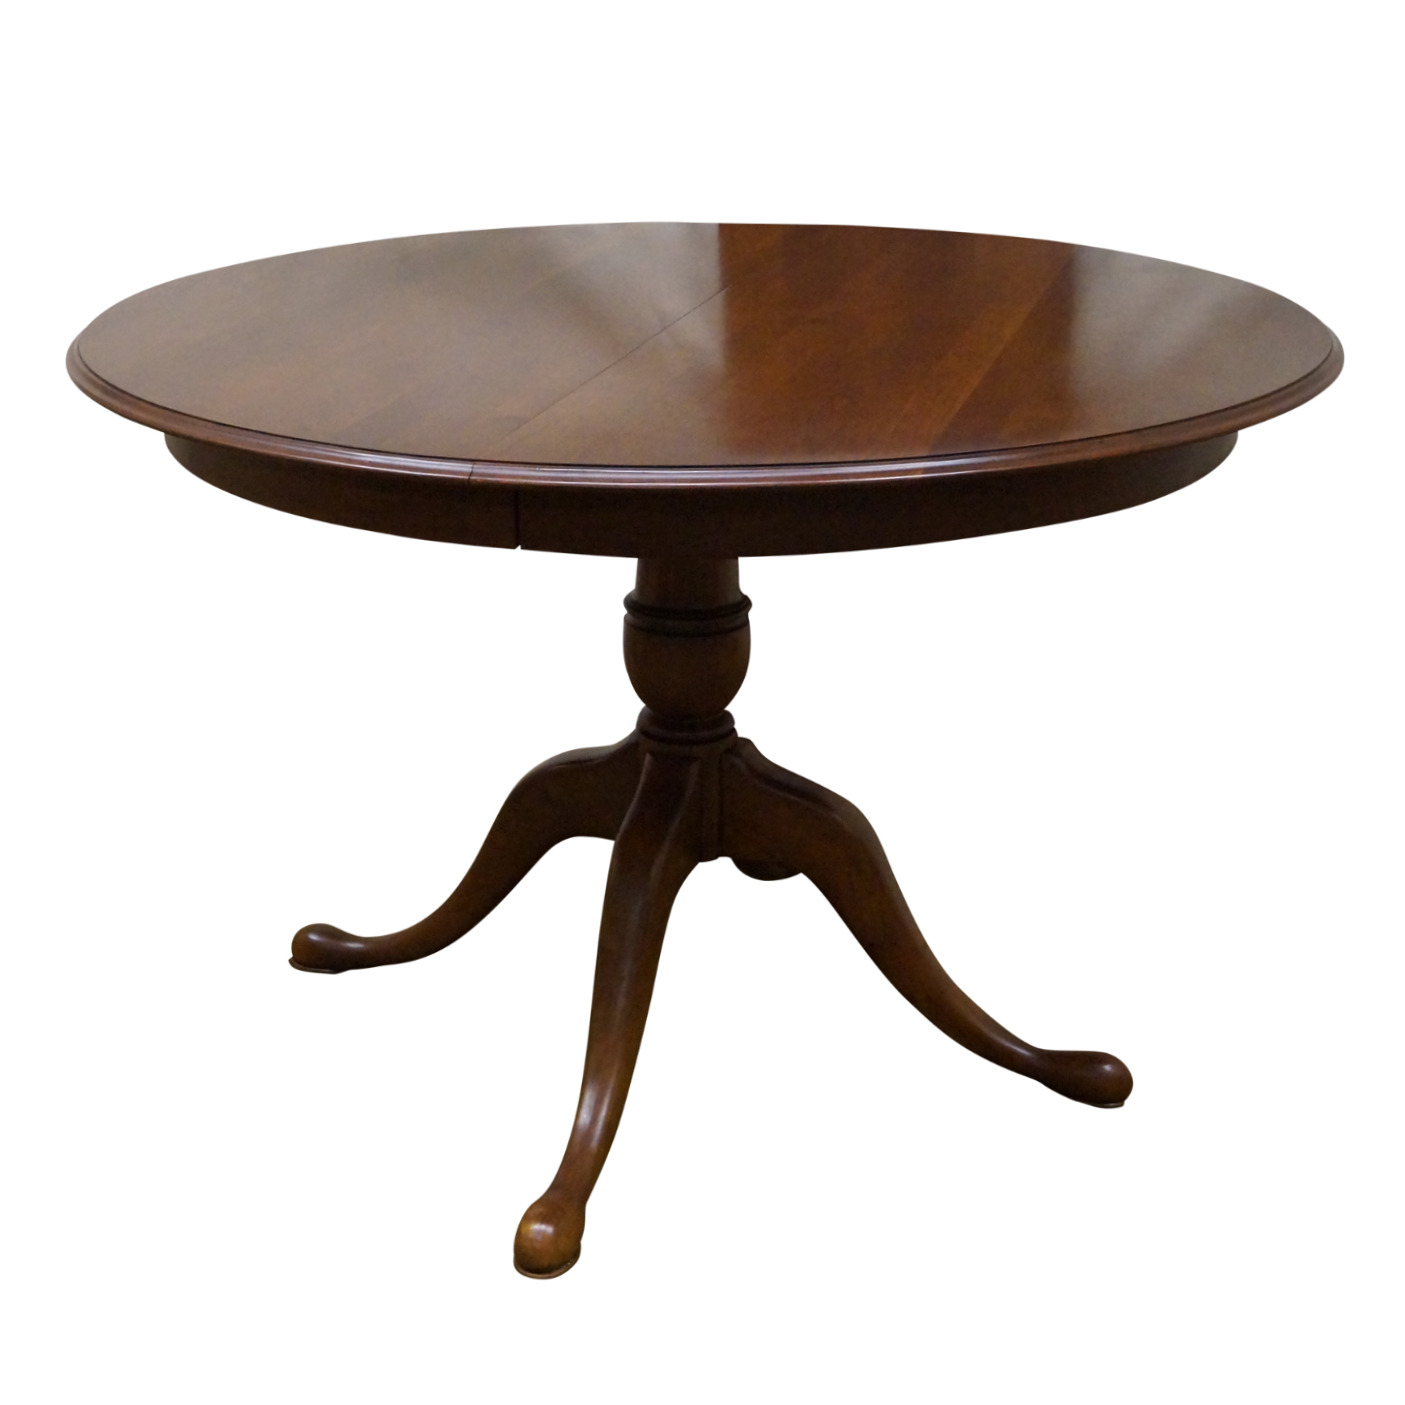 Cherry Wood Dining Table And Chairs Ethan Allen Dining: Ethan Allen Solid Cherry Round Dining Table